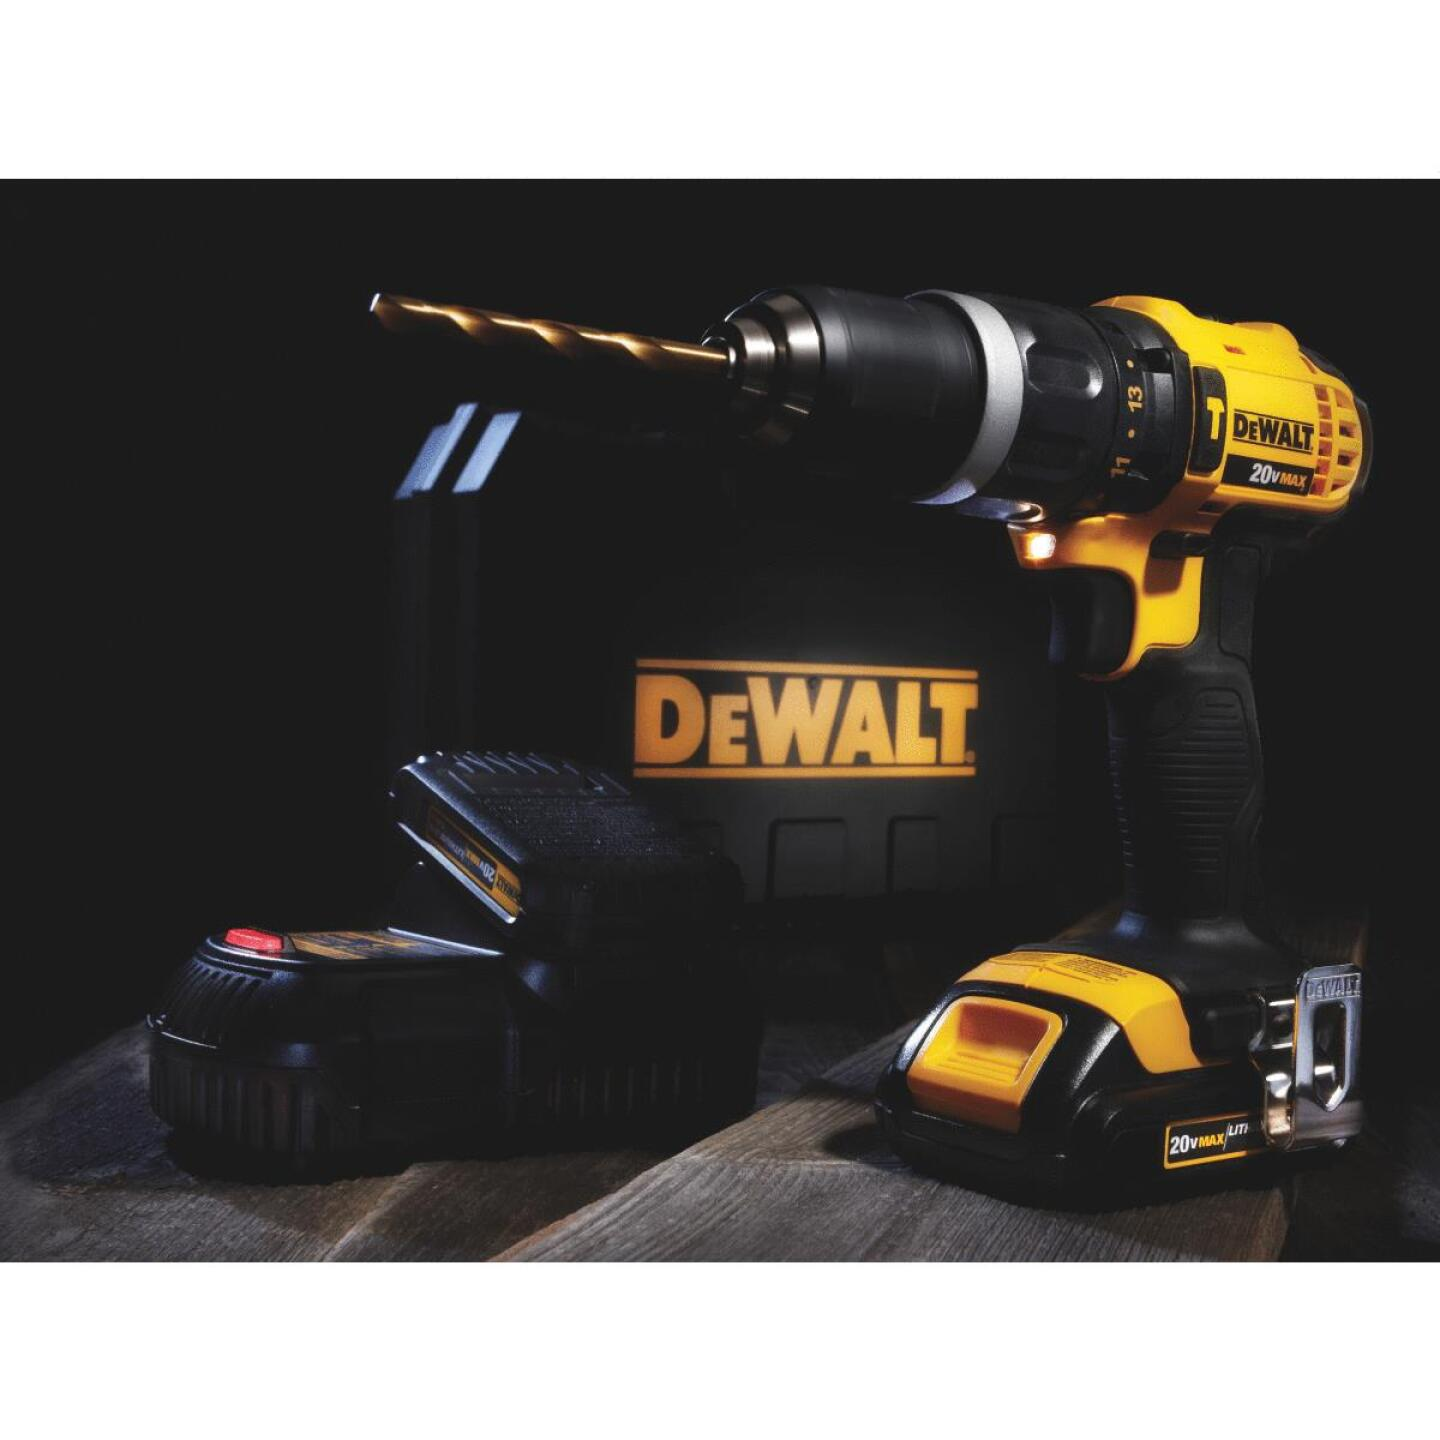 DeWalt 20 Volt MAX Lithium-Ion 1/2 In. Compact Cordless Hammer Drill Kit Image 2